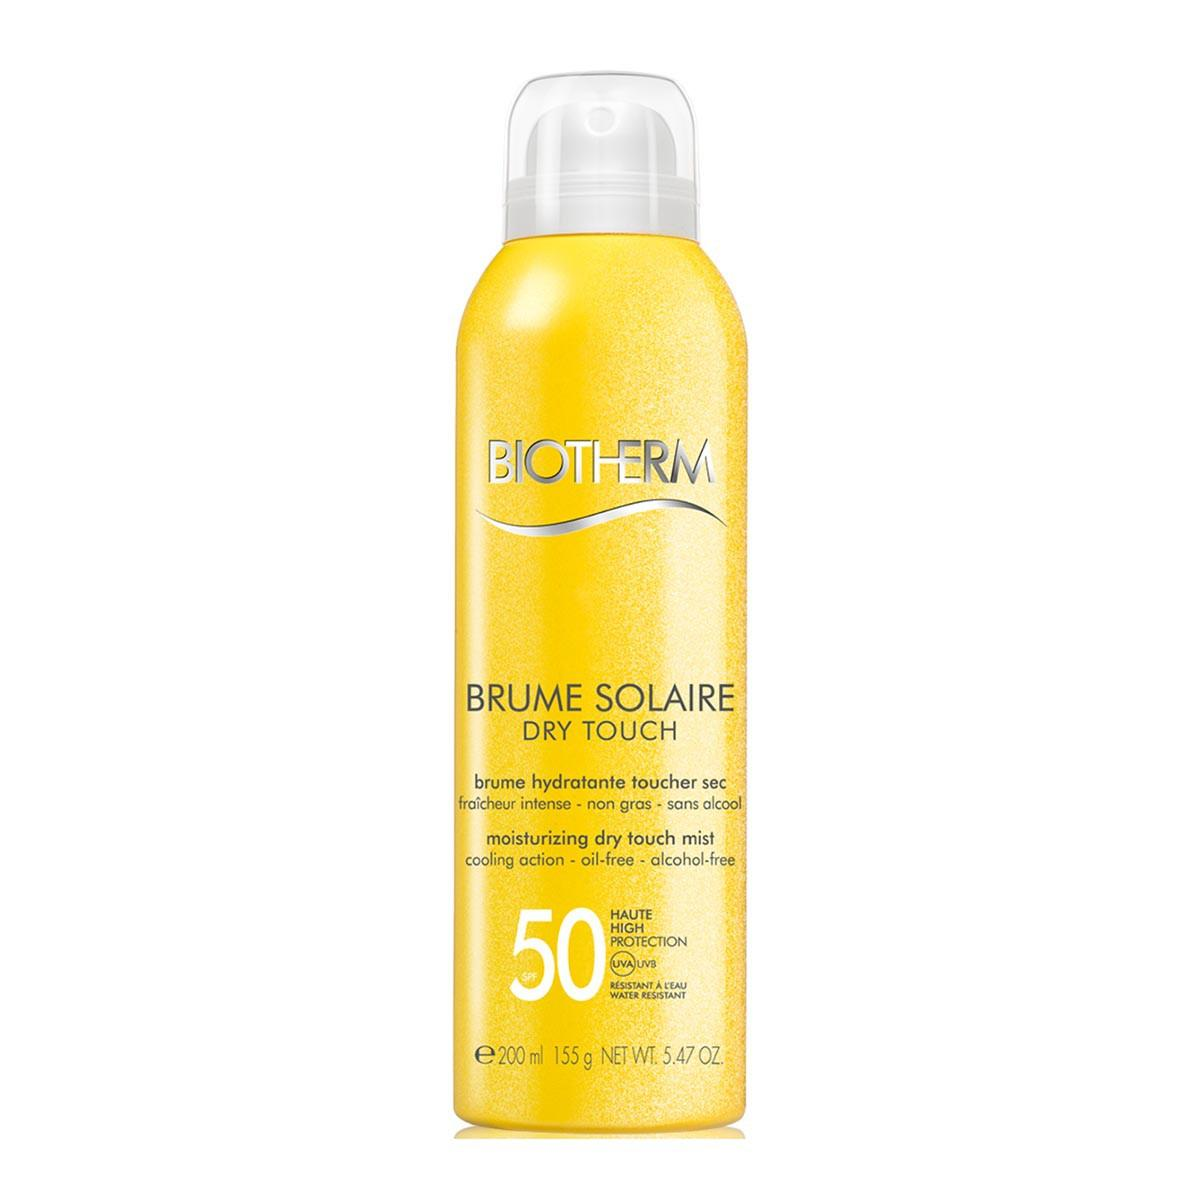 Biotherm Brume Solaire Dry Touch Oil Free Spf50 200ml